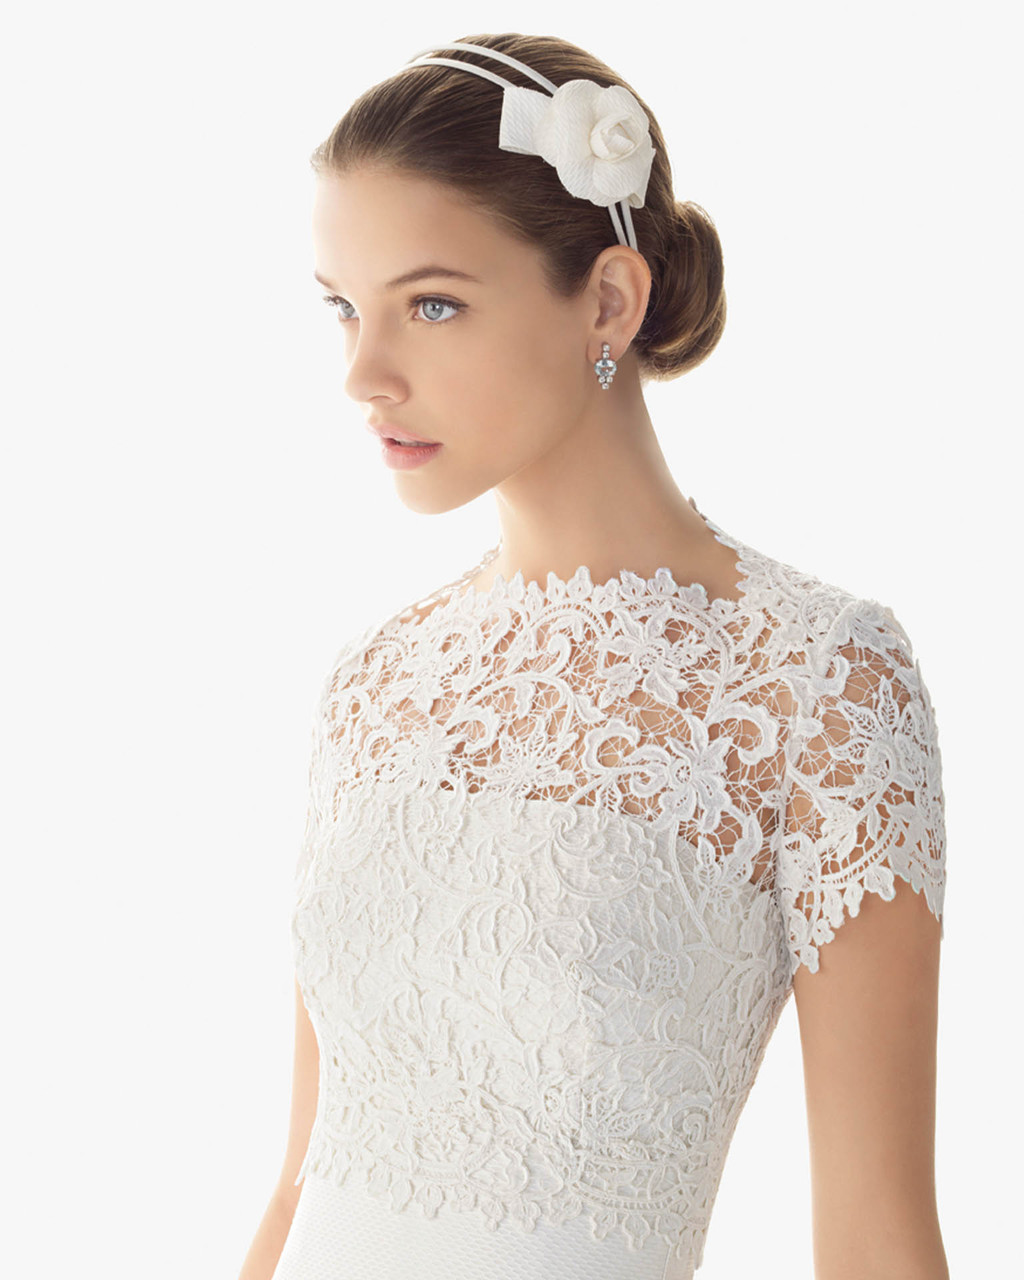 Lace Bridal Top to wear over simple wedding dress